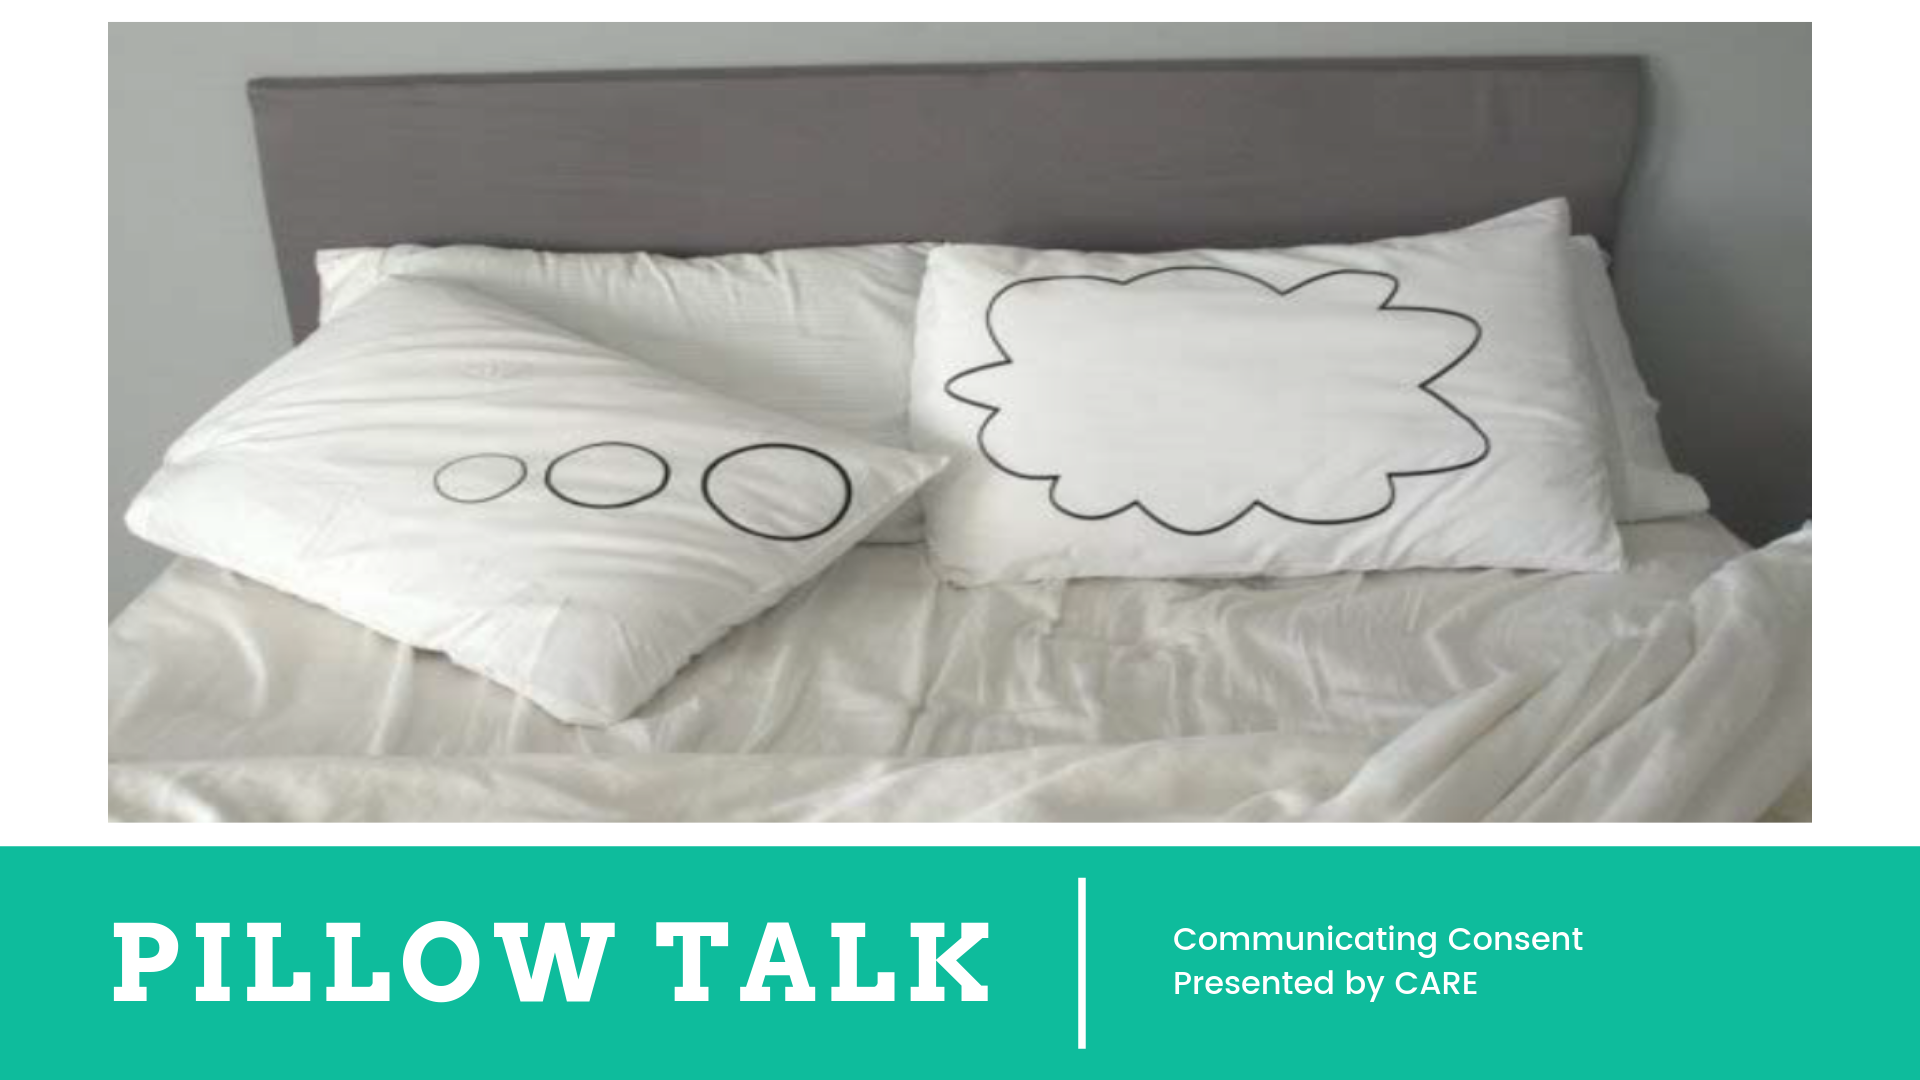 Pillow Talk. Communicating Consent, presented by CARE